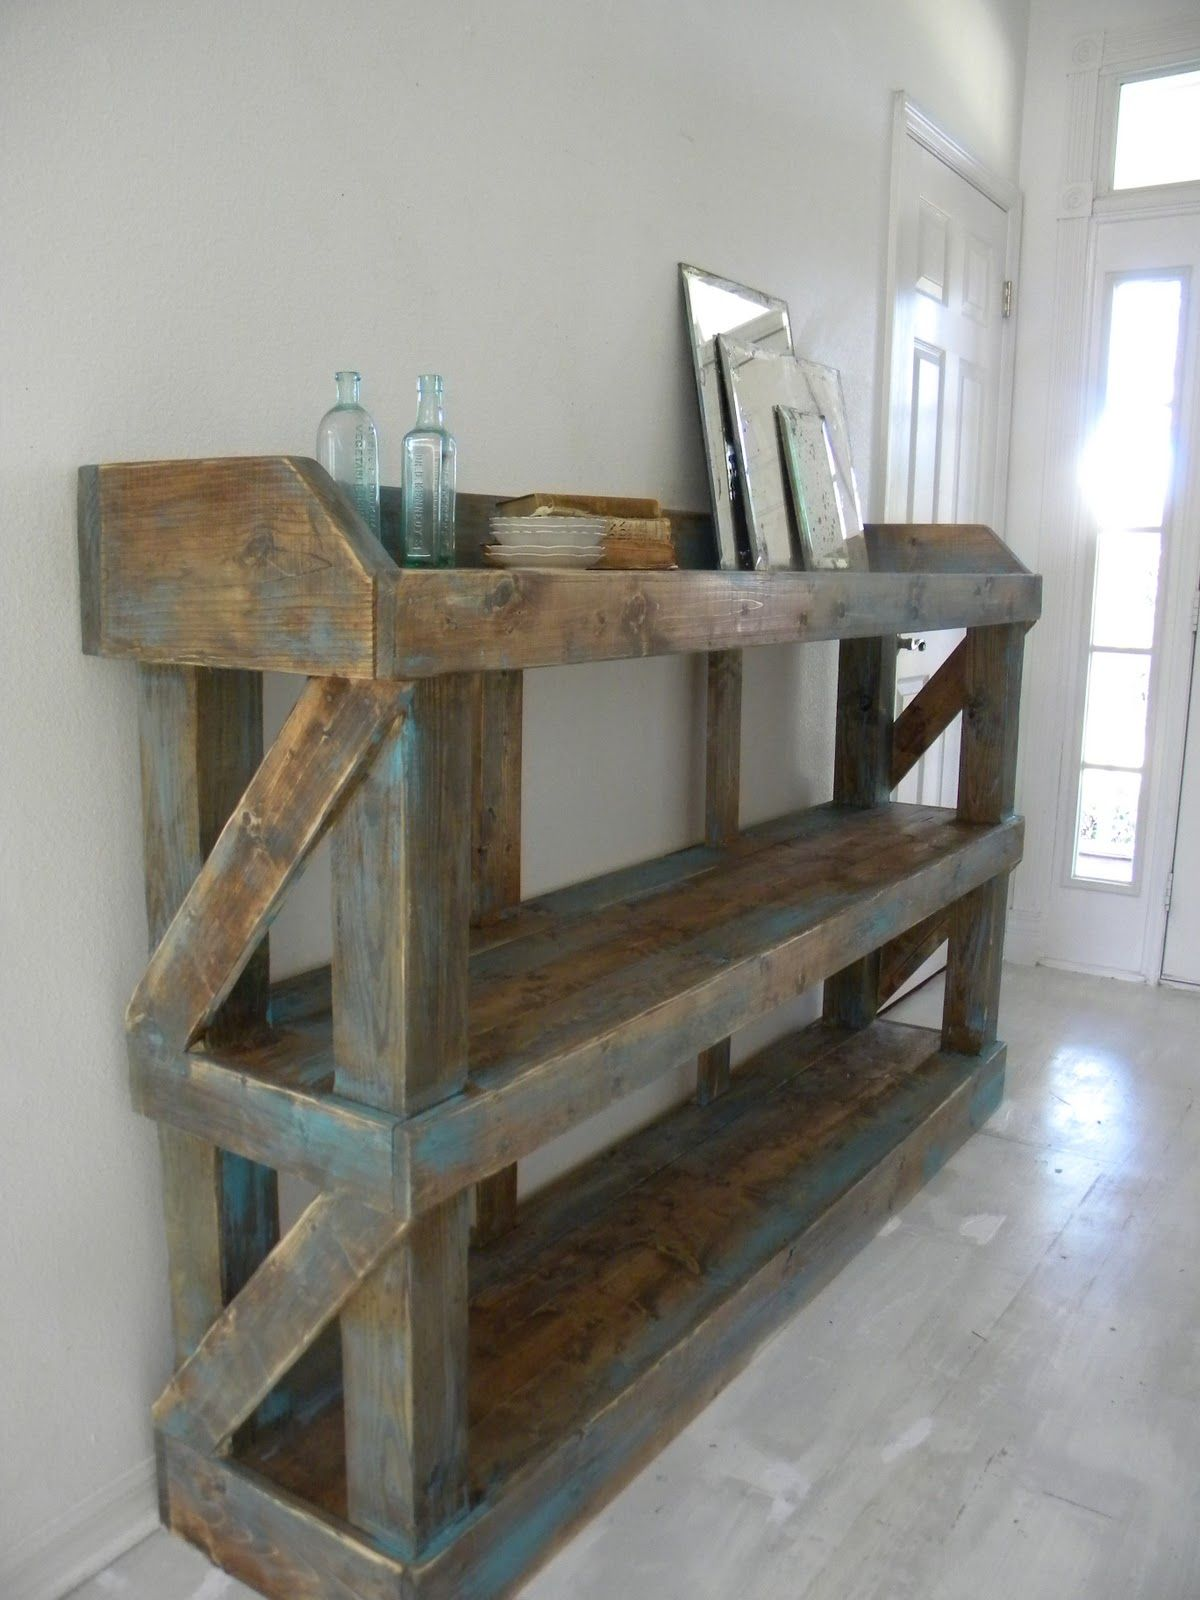 Shelving (where\'s Dad?) | Home ideas | Pinterest | Palets, Madera y ...